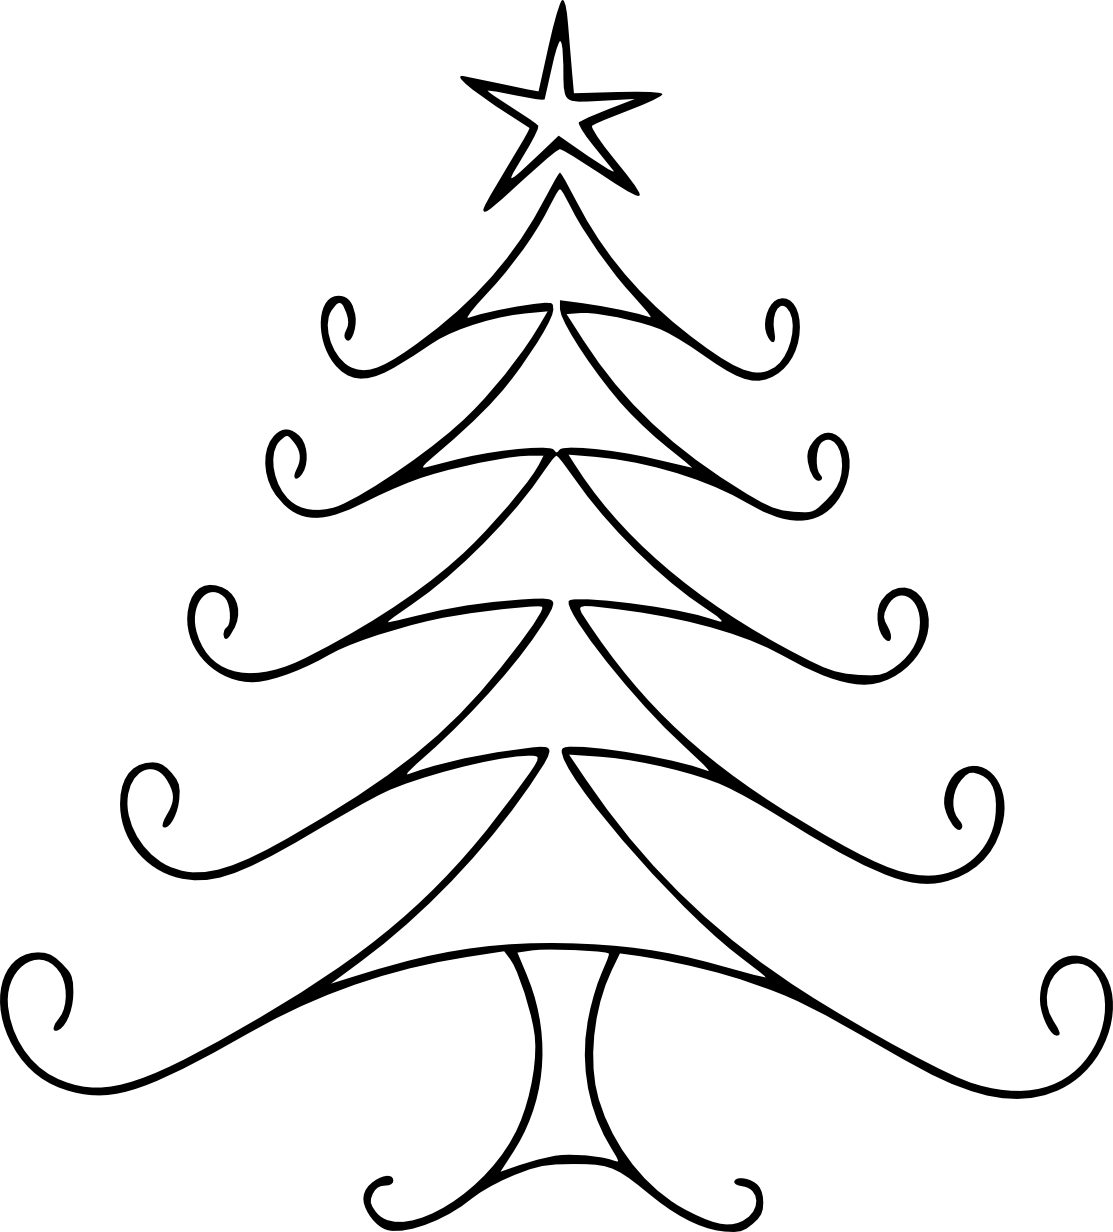 Christmas tree shape clipart black and white stock Christmas Line Drawing - Cliparts. | CRAFT - HOLIDAYS | Pinterest ... black and white stock